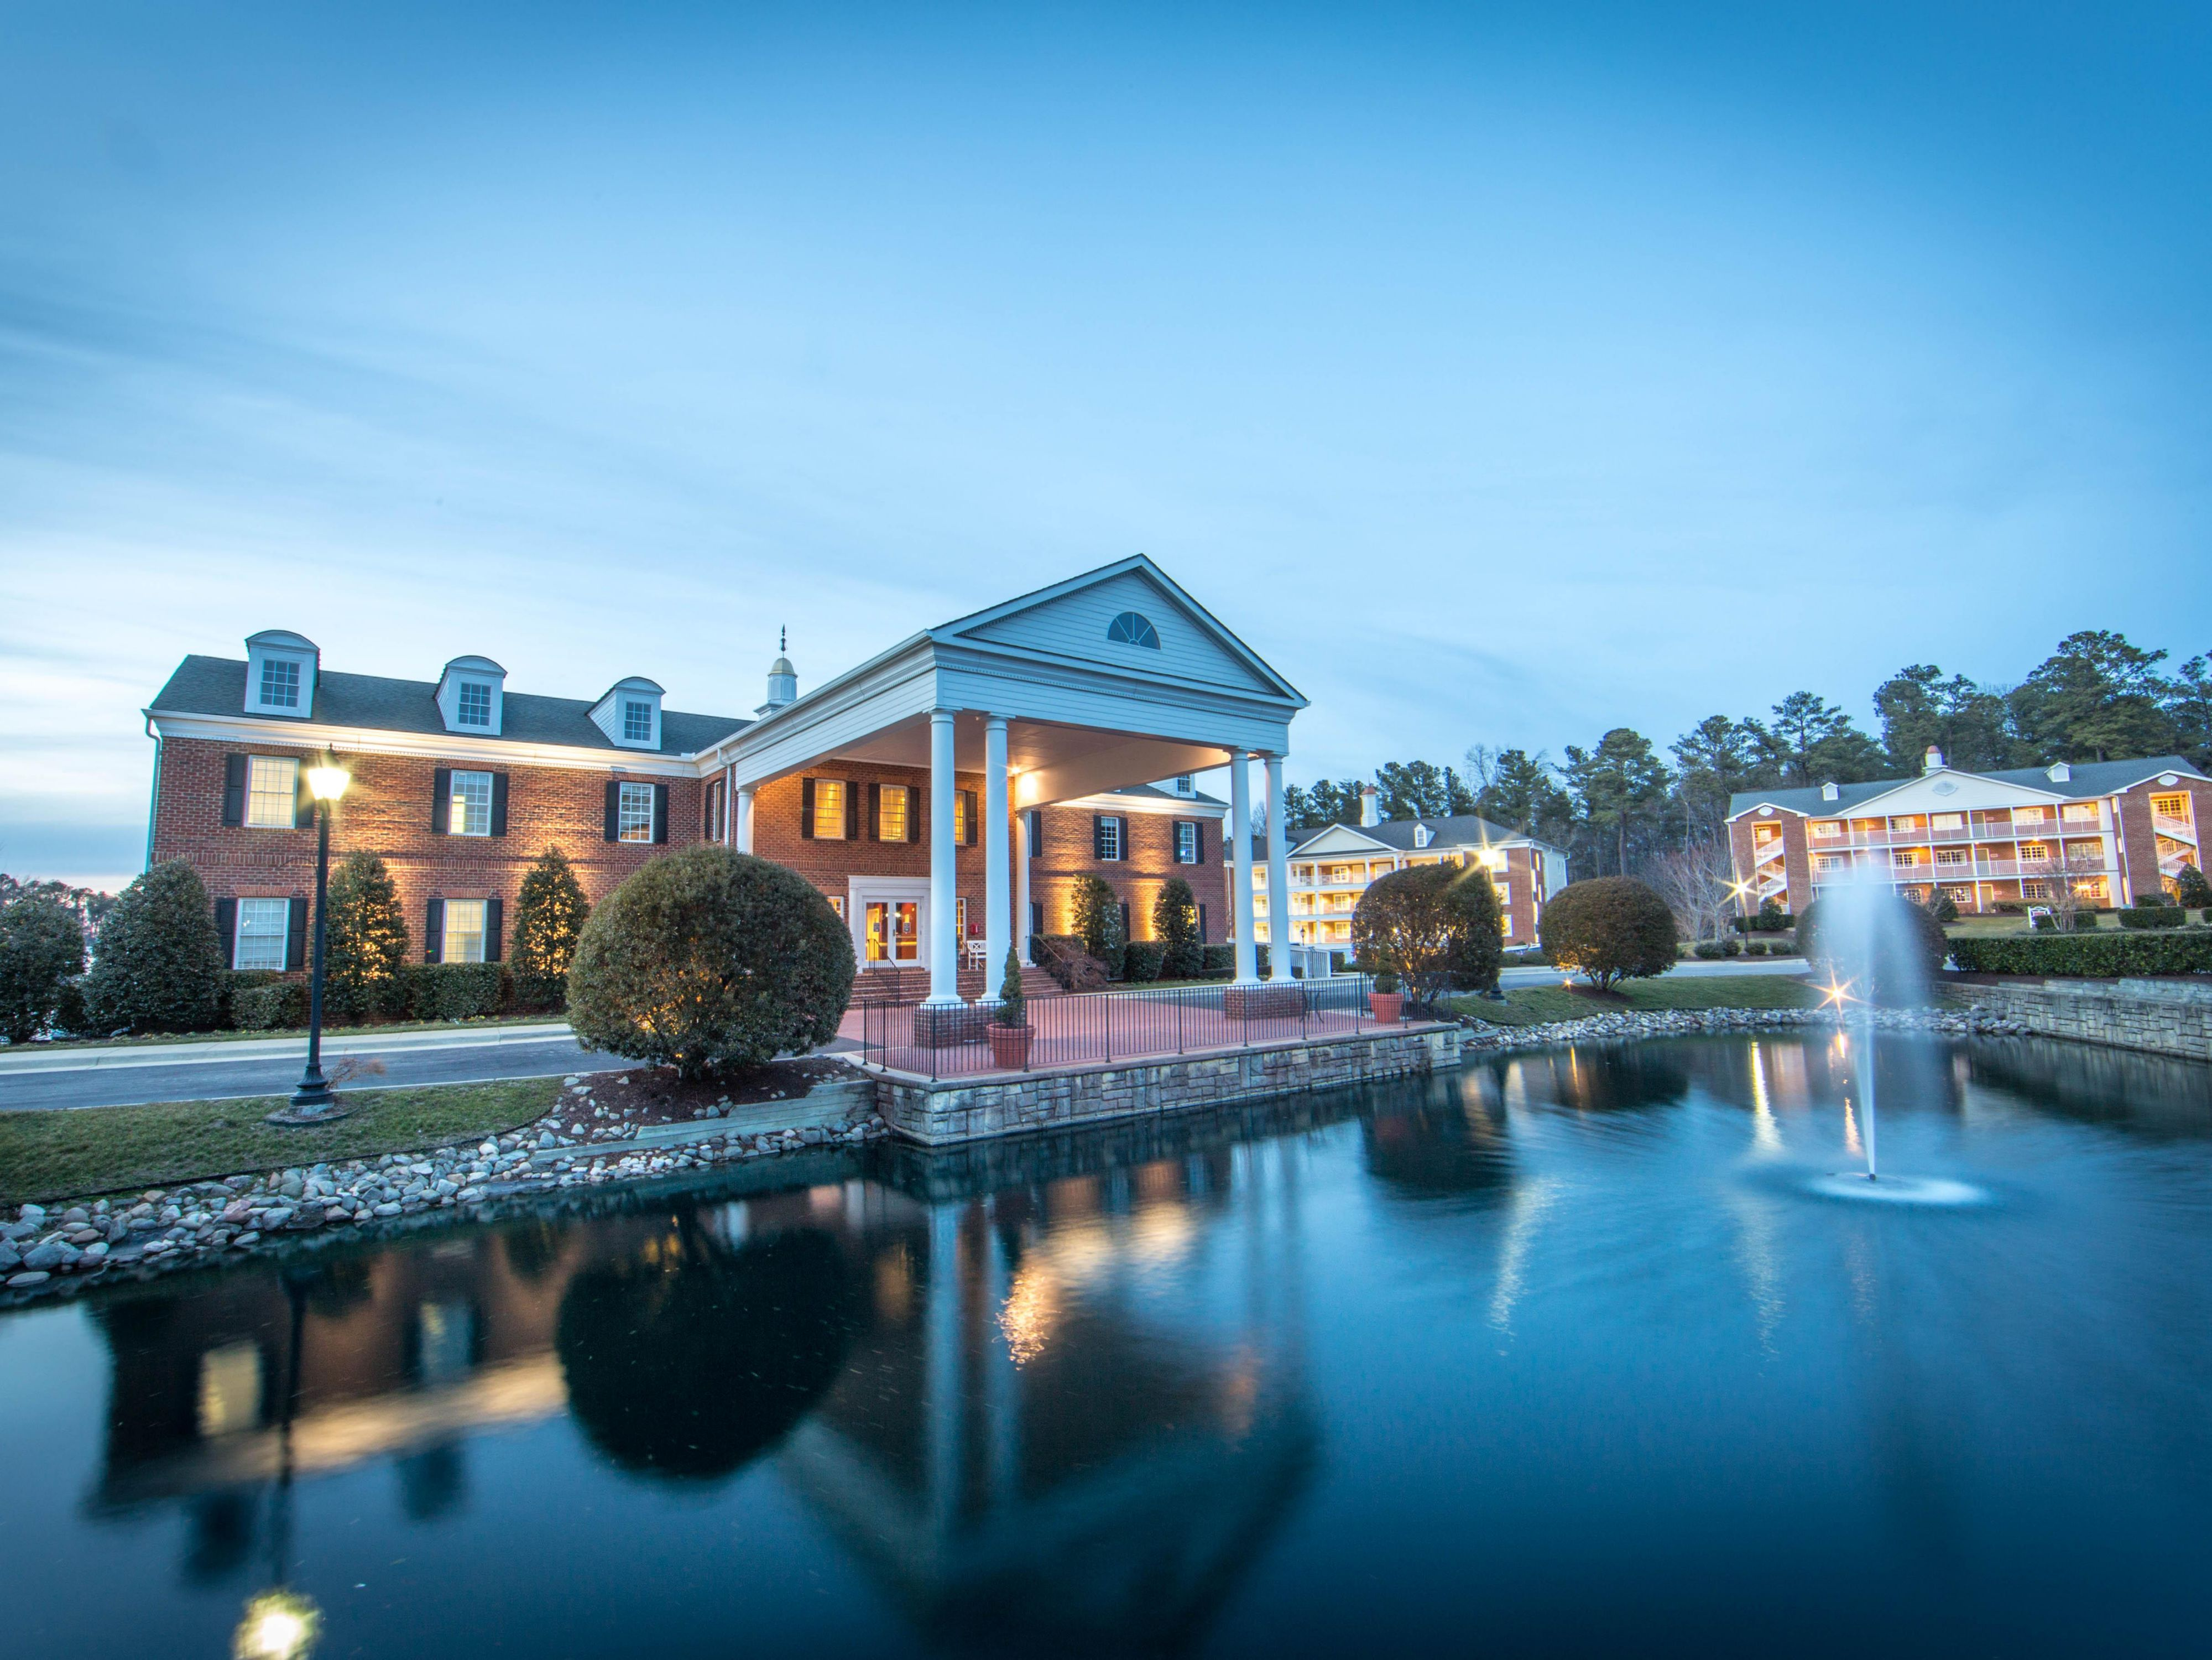 4 Star Hotels In Williamsburg Va 2018 World 39 S Best Hotels